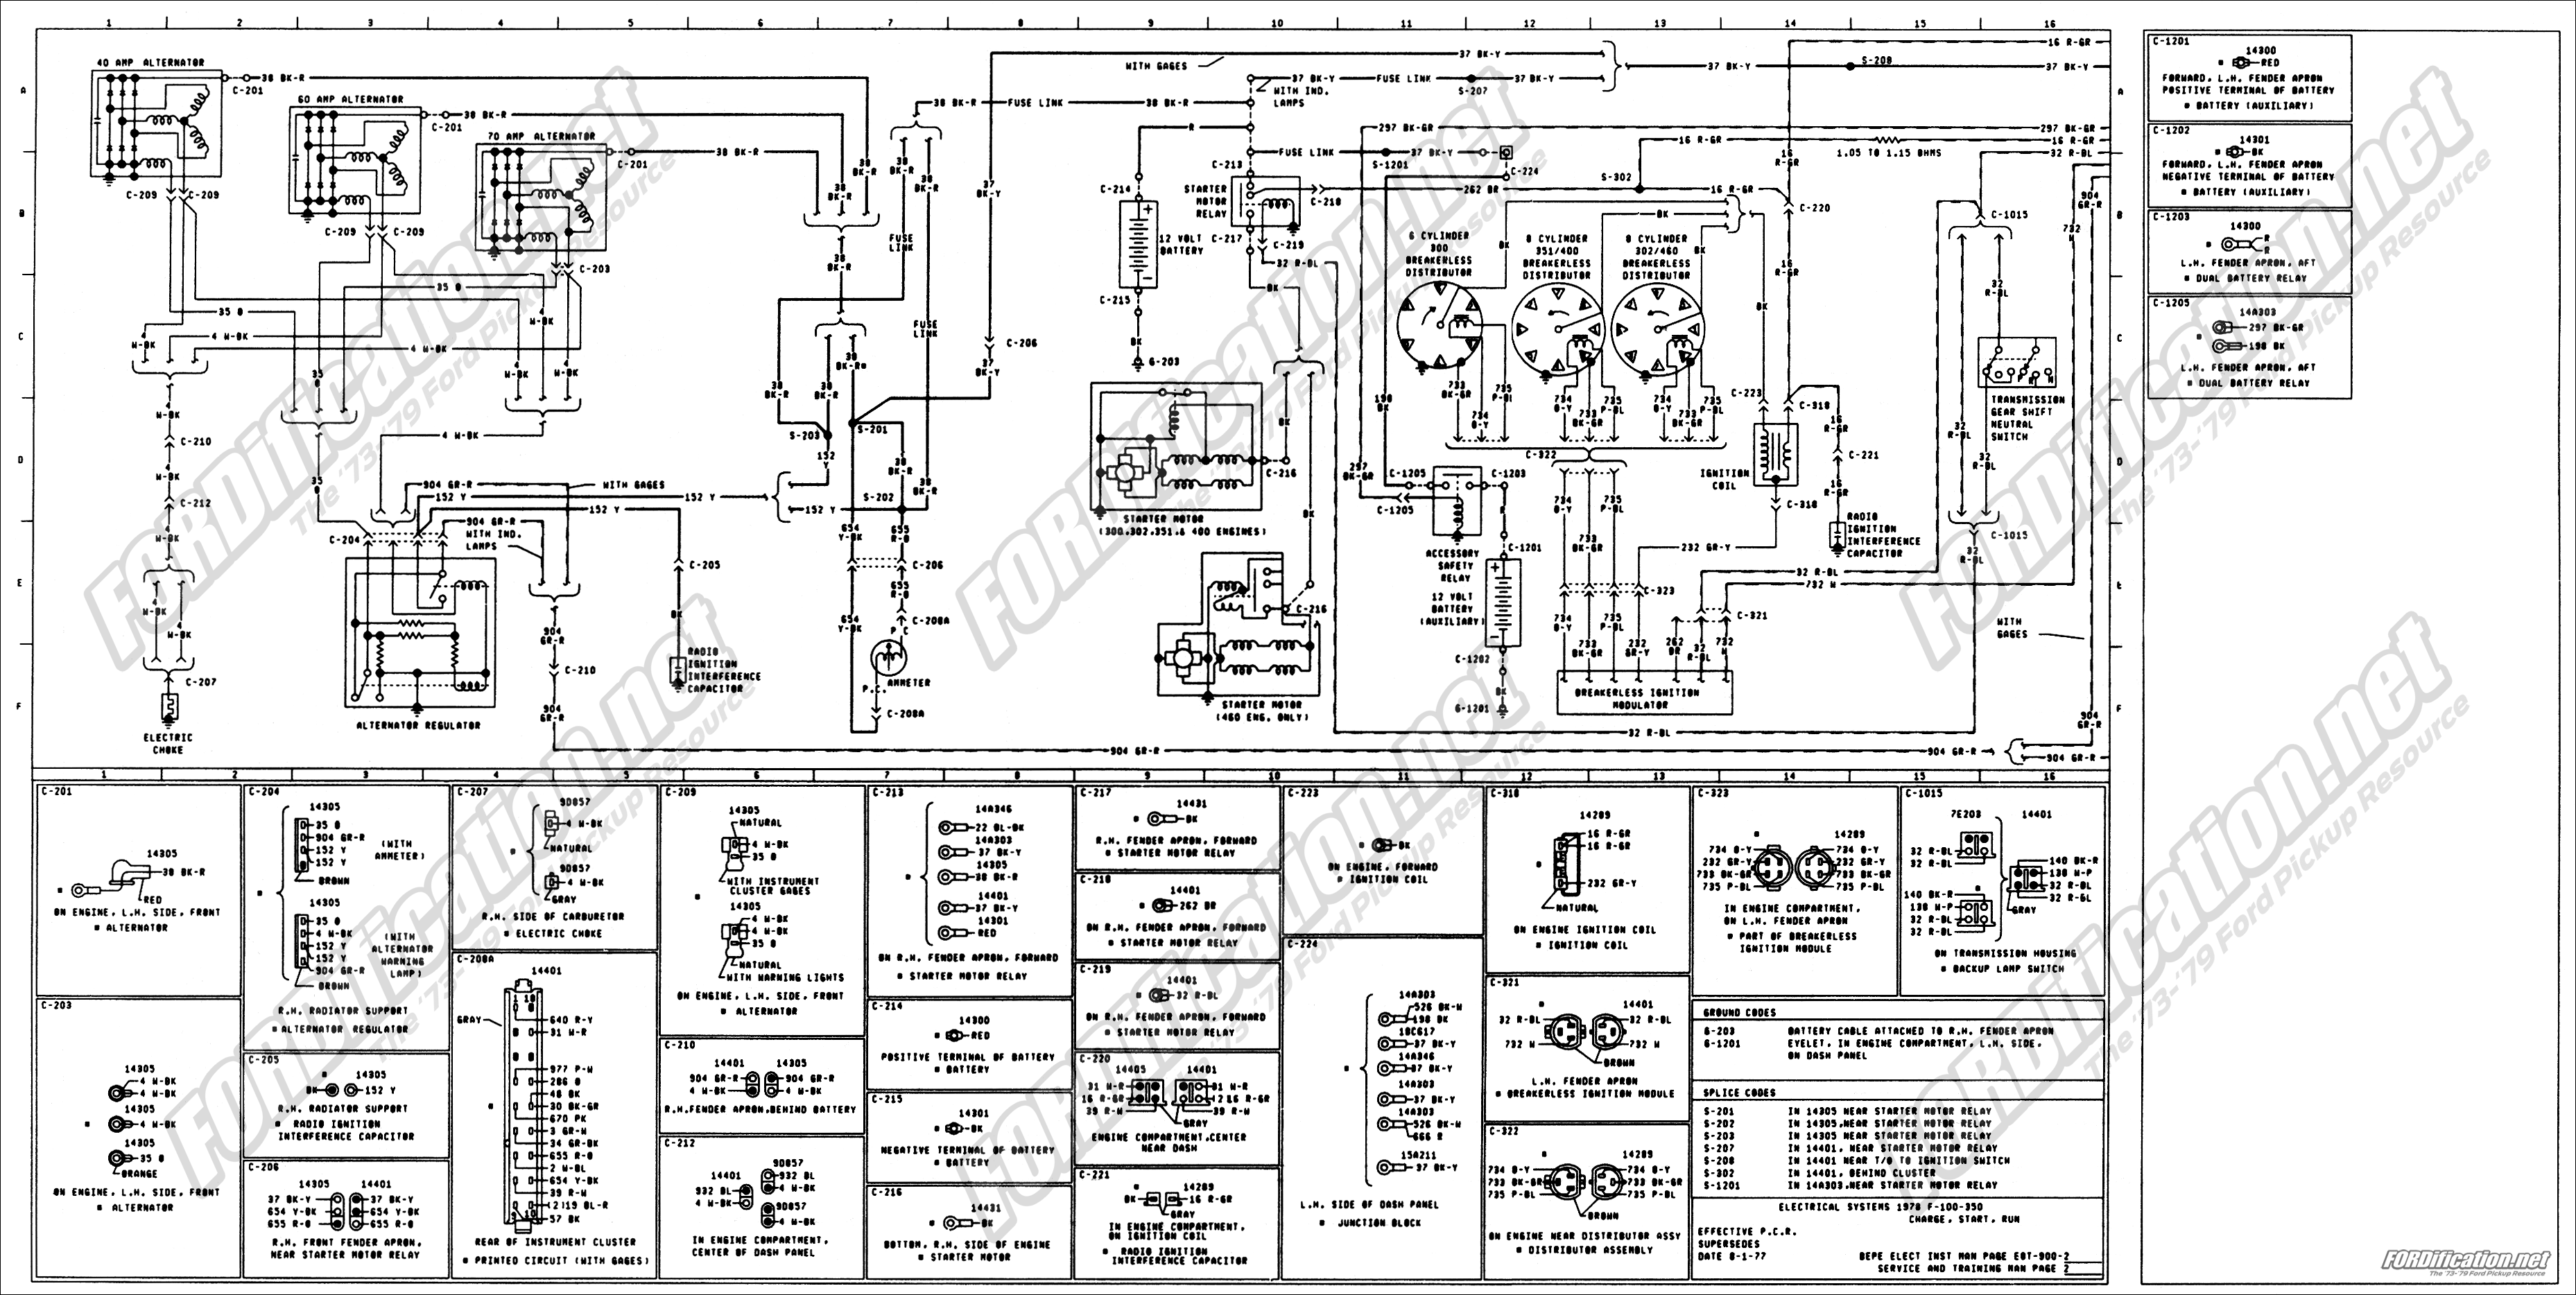 wiring diagram for 1937 buick